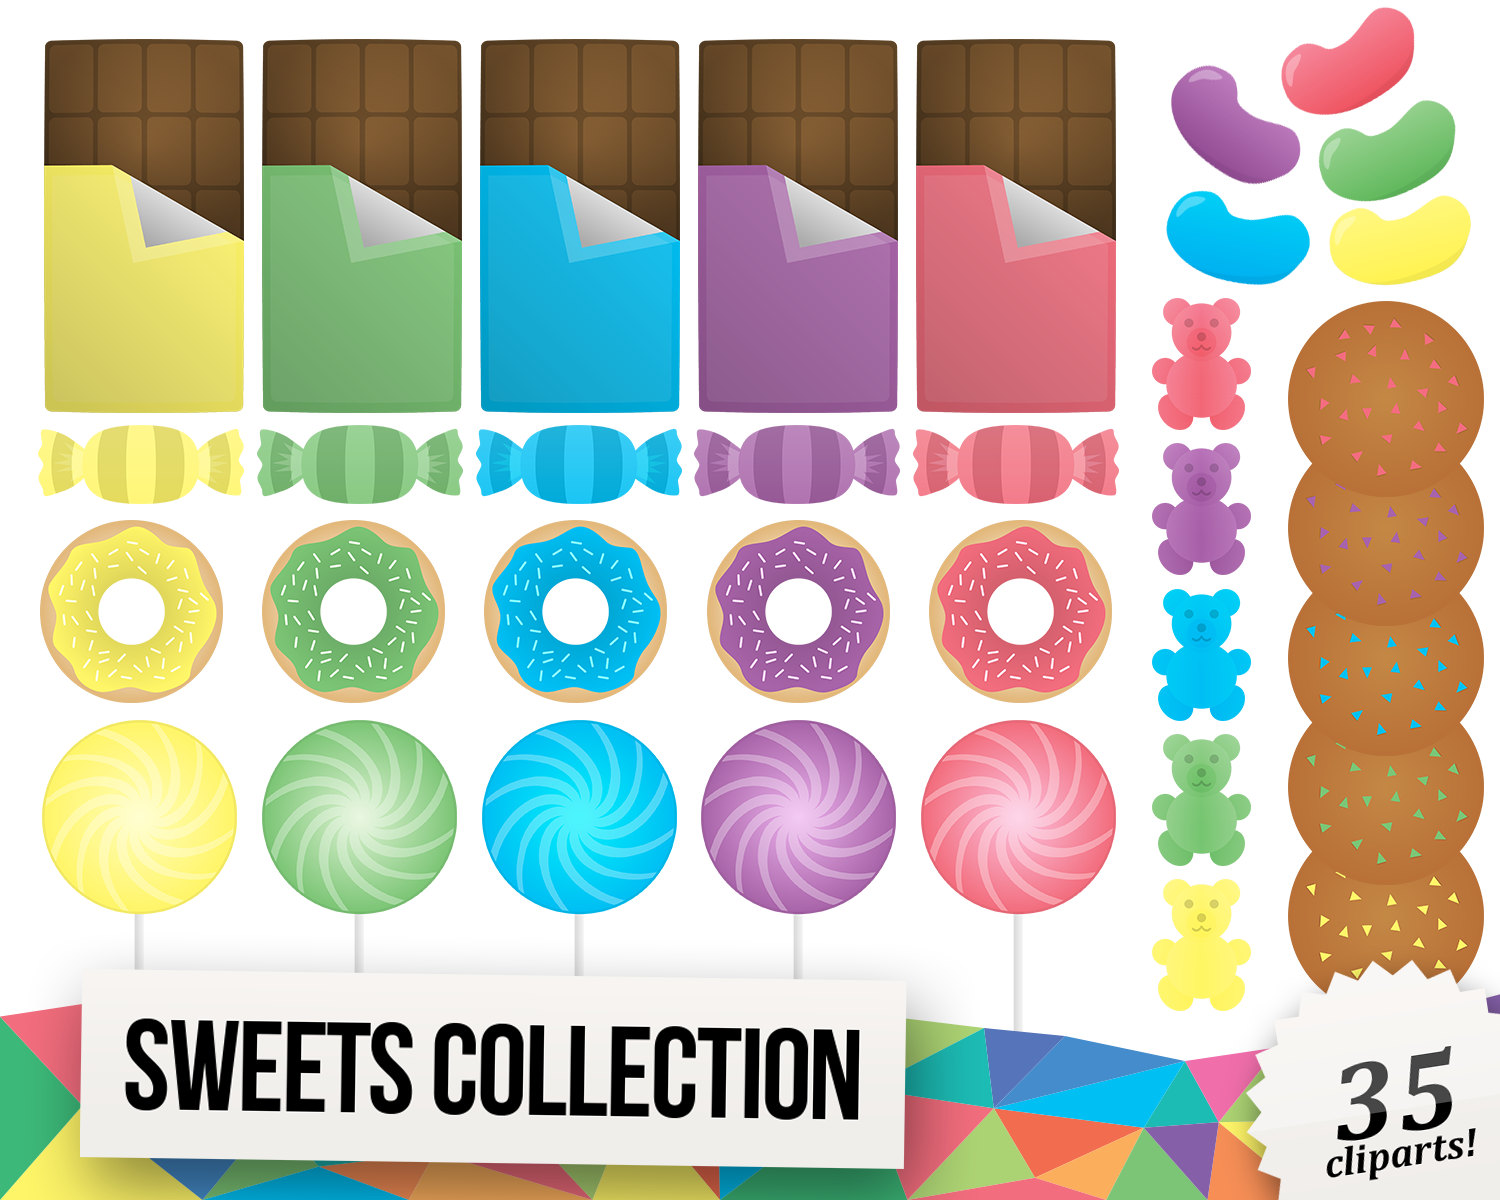 Jelly Bean clipart candy This Chocolate Clipart is file